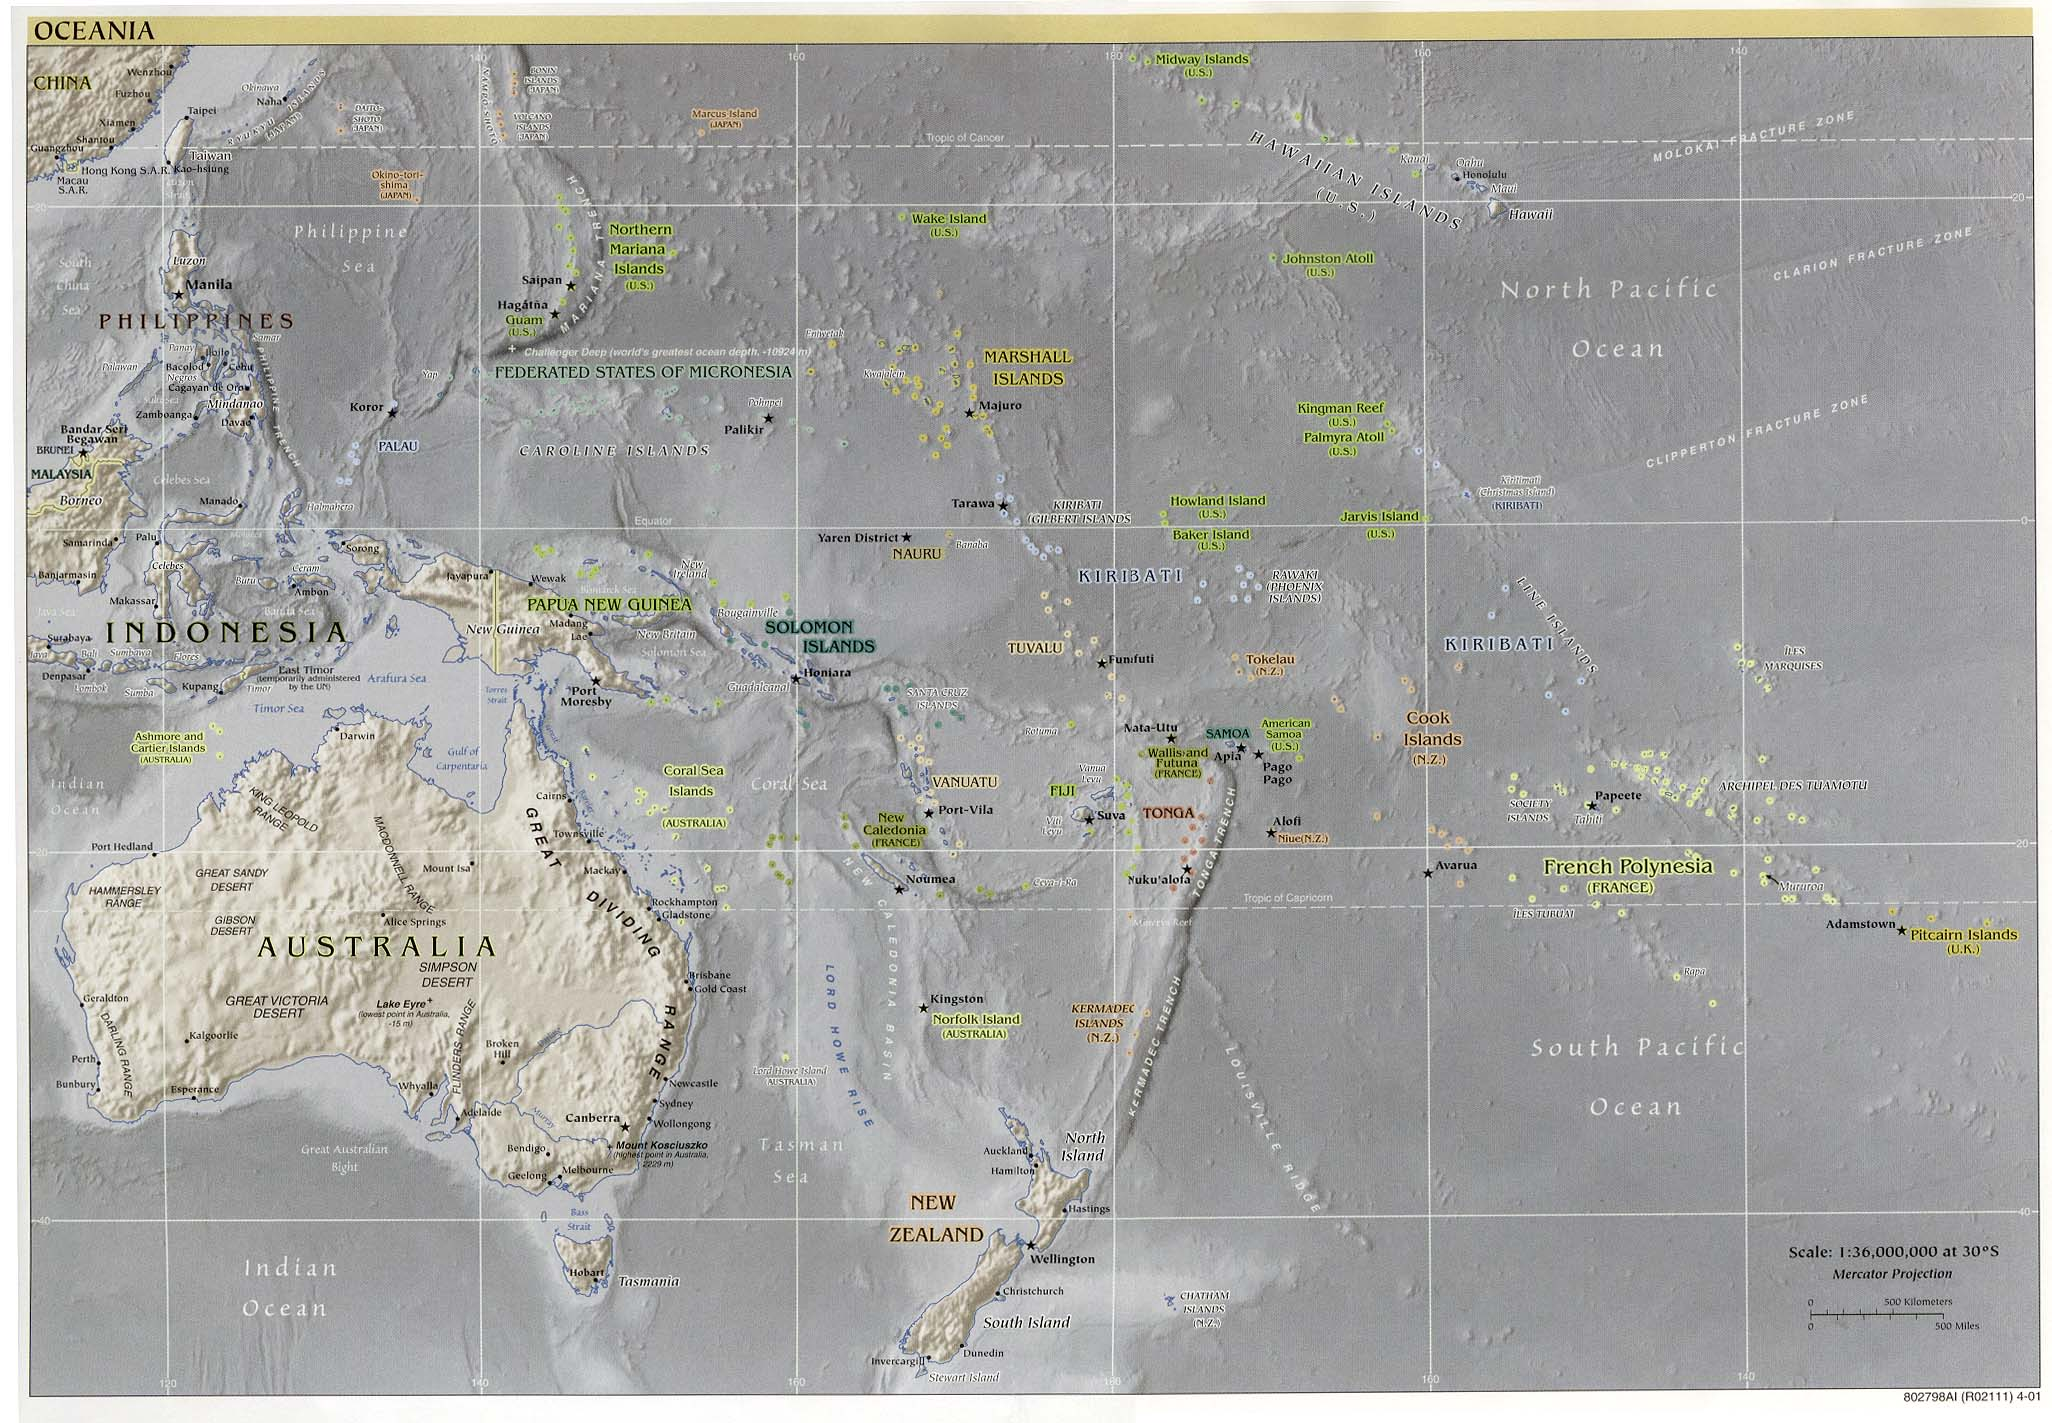 Oceania physical map 2001